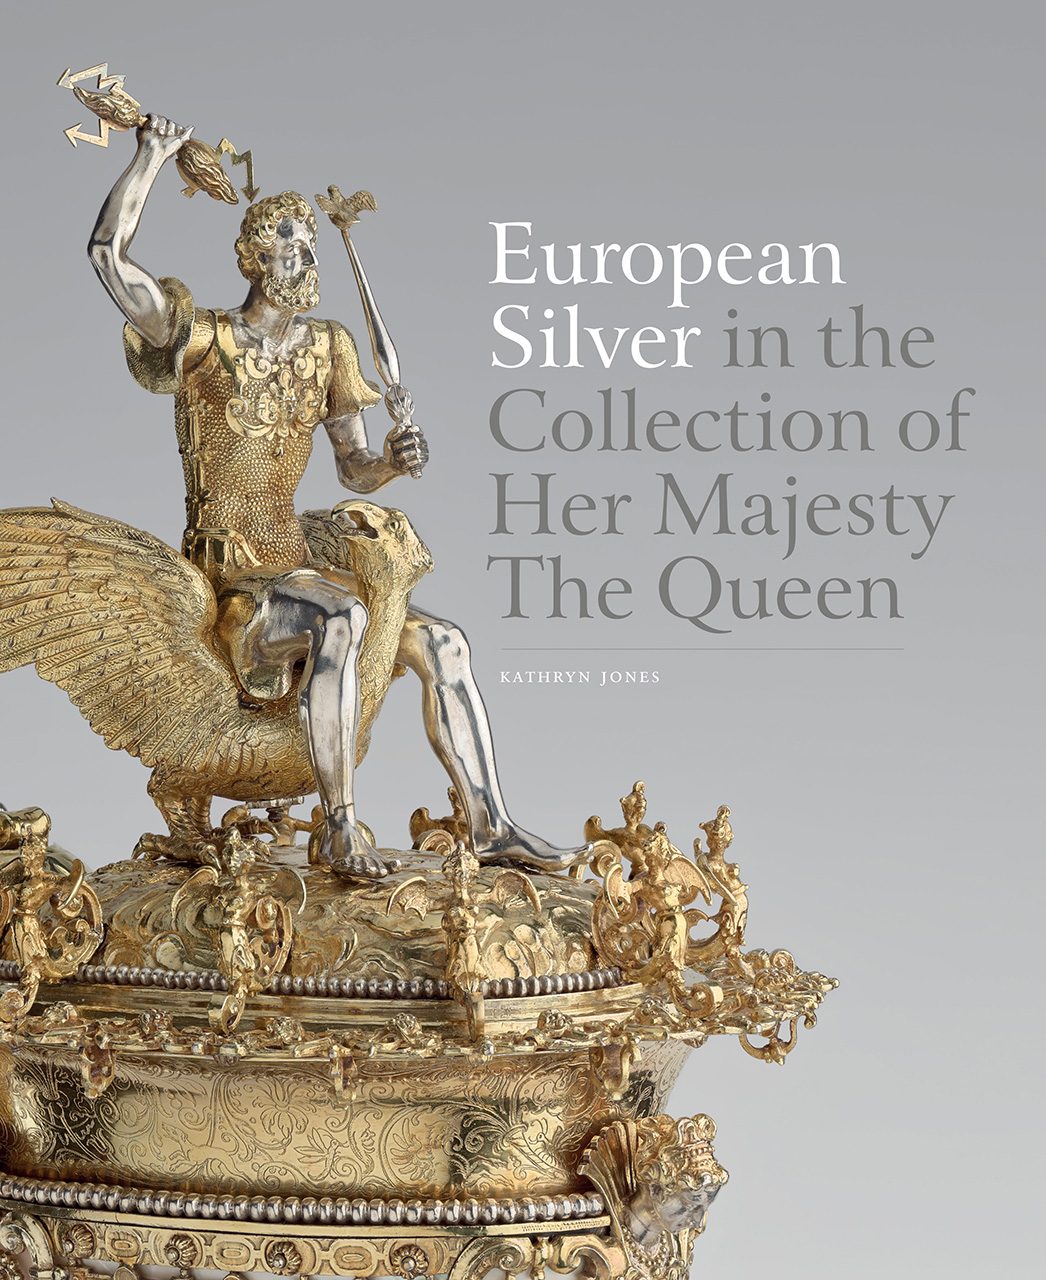 European Silver in the Collection of Her Majesty The